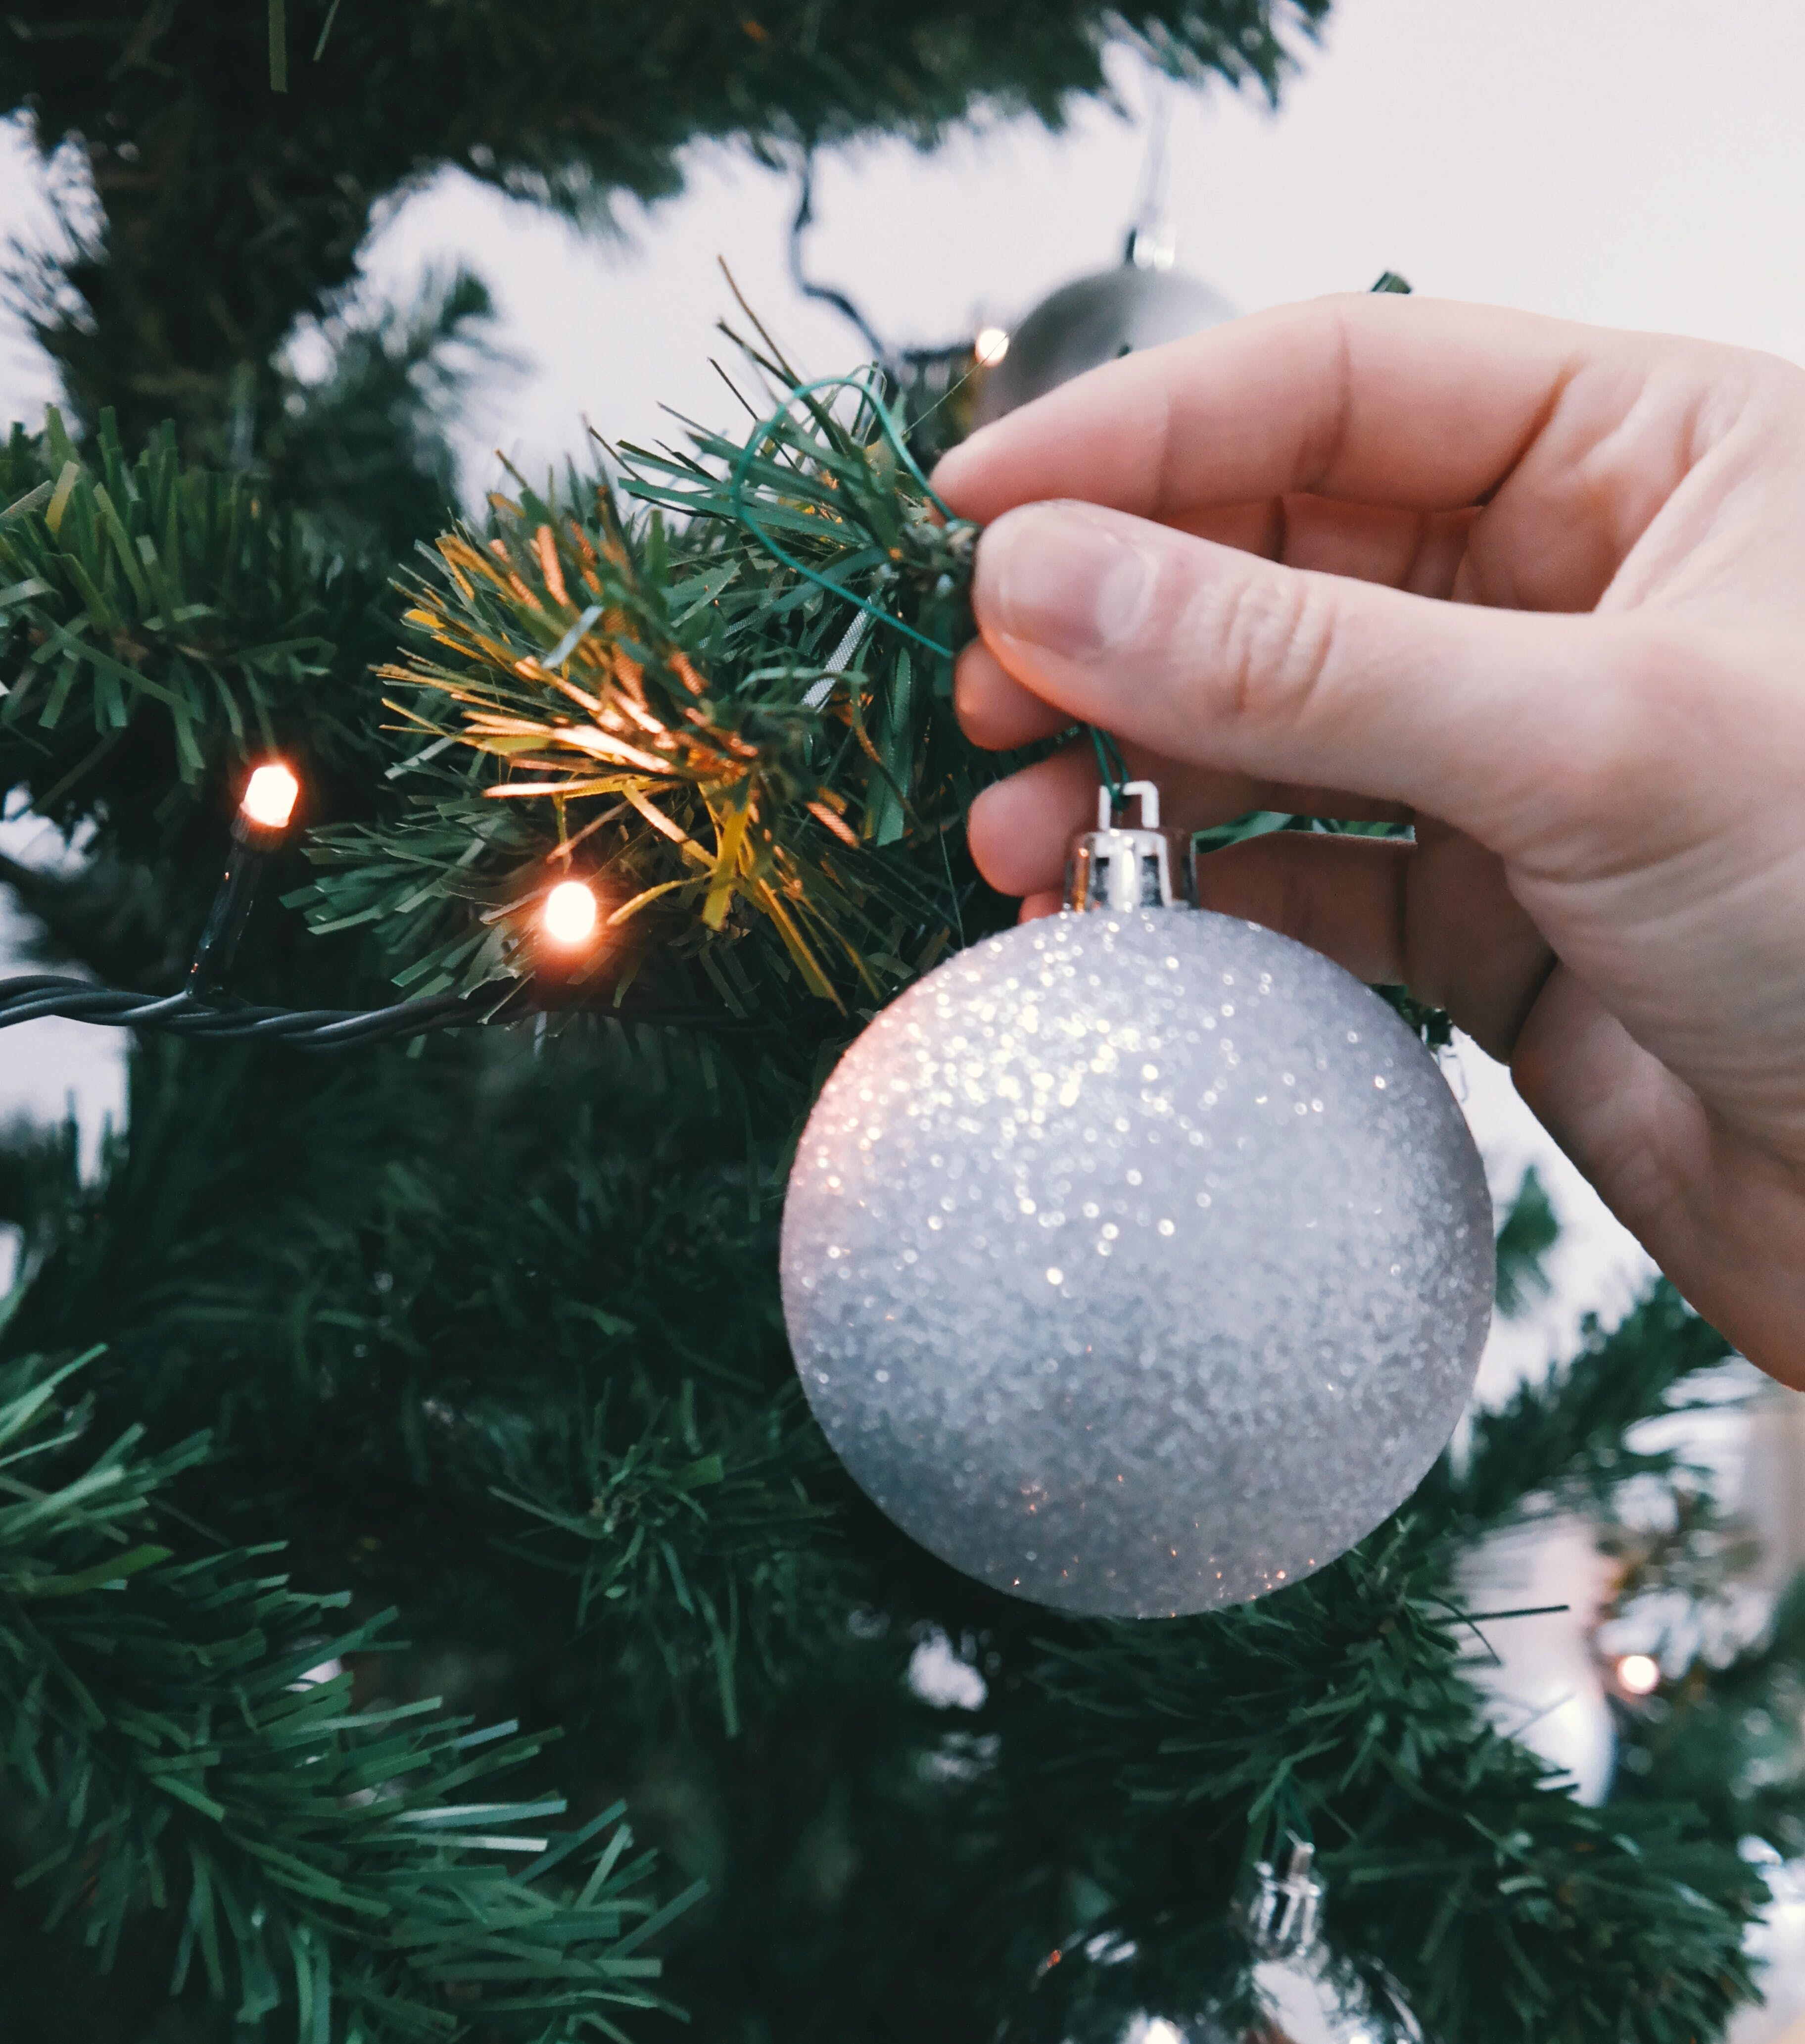 Person Holding Silver Glittered Bauble